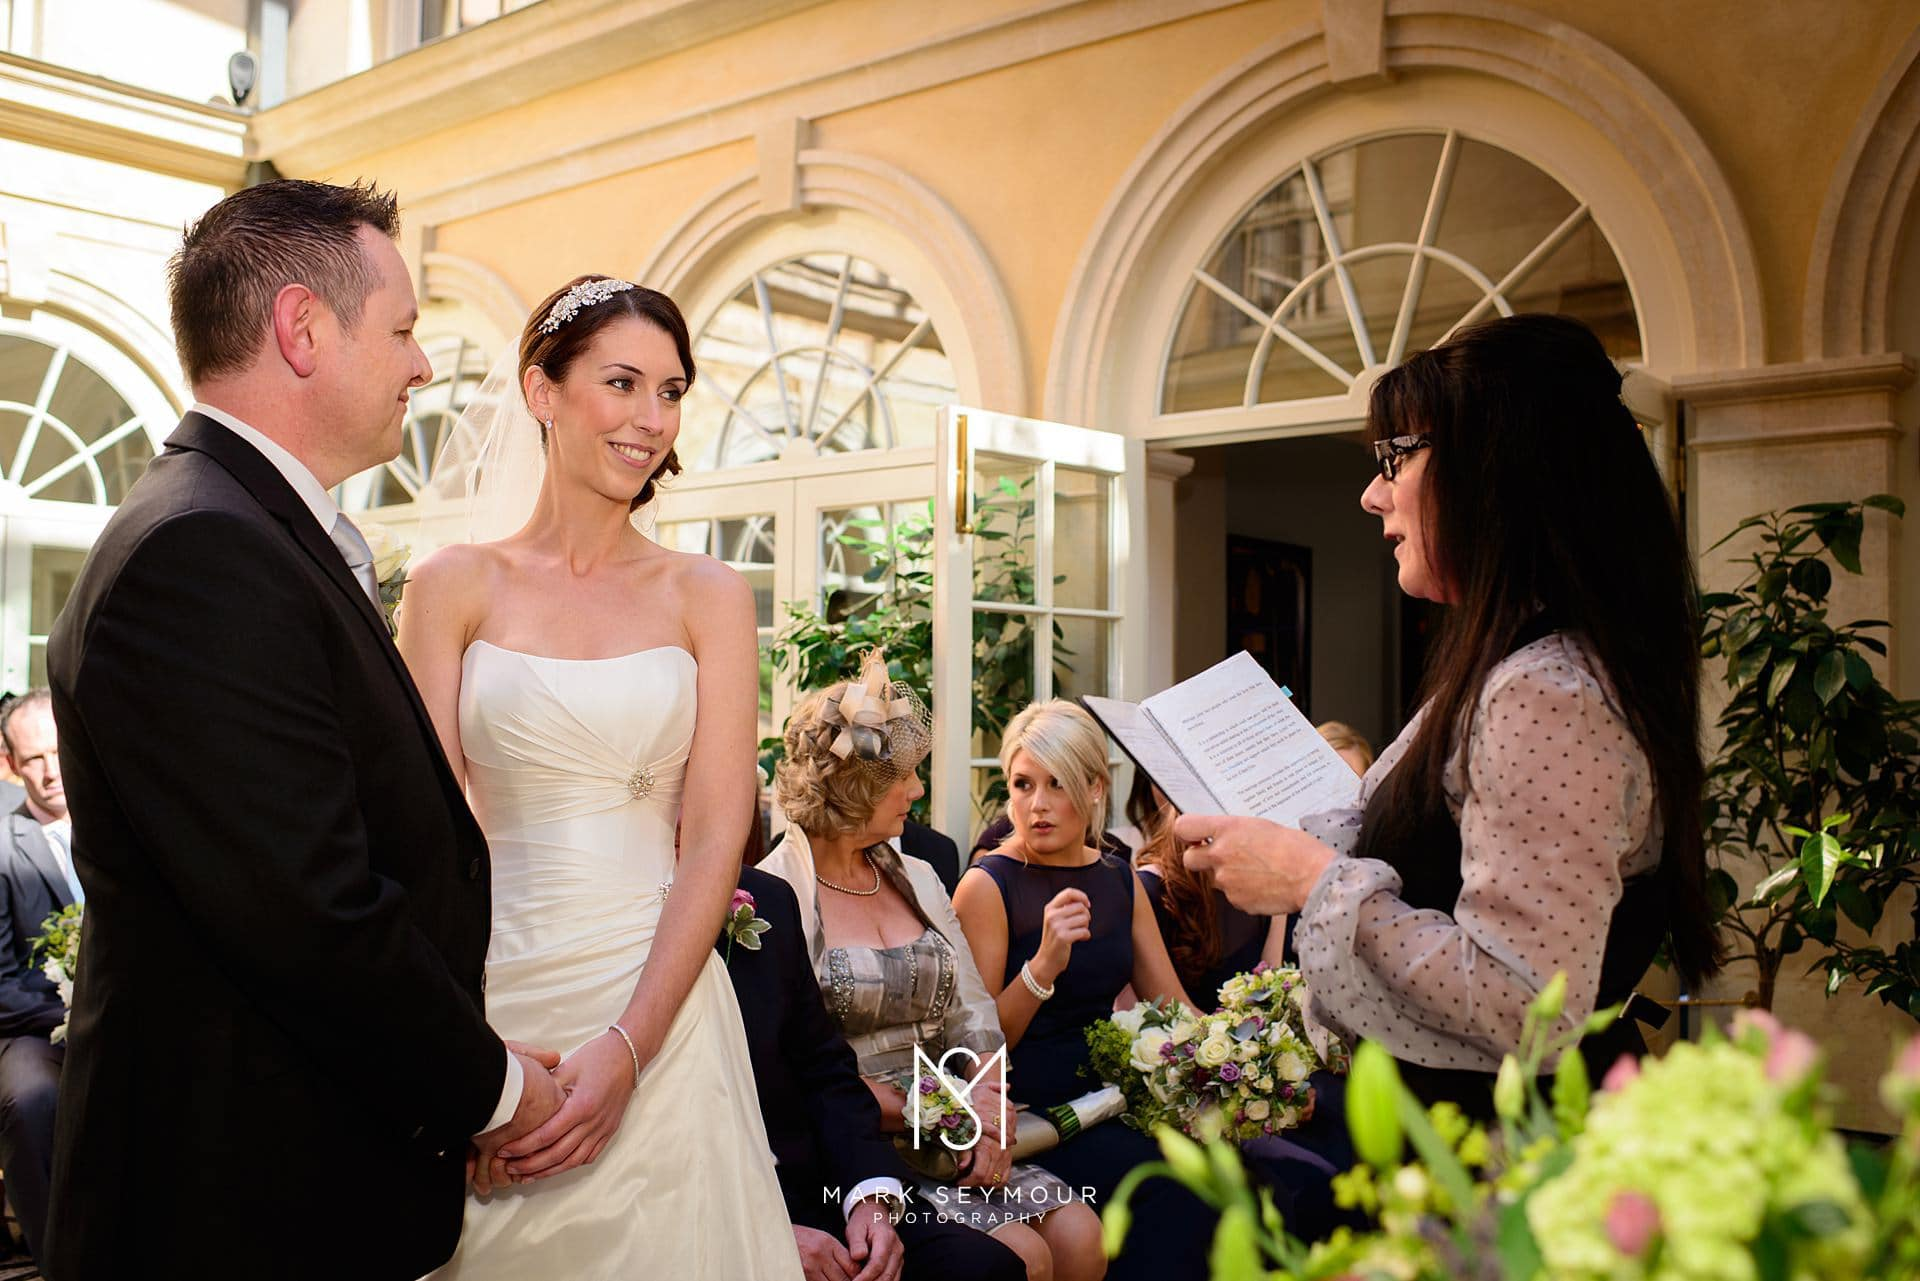 Getting married at The Limewood Hotel